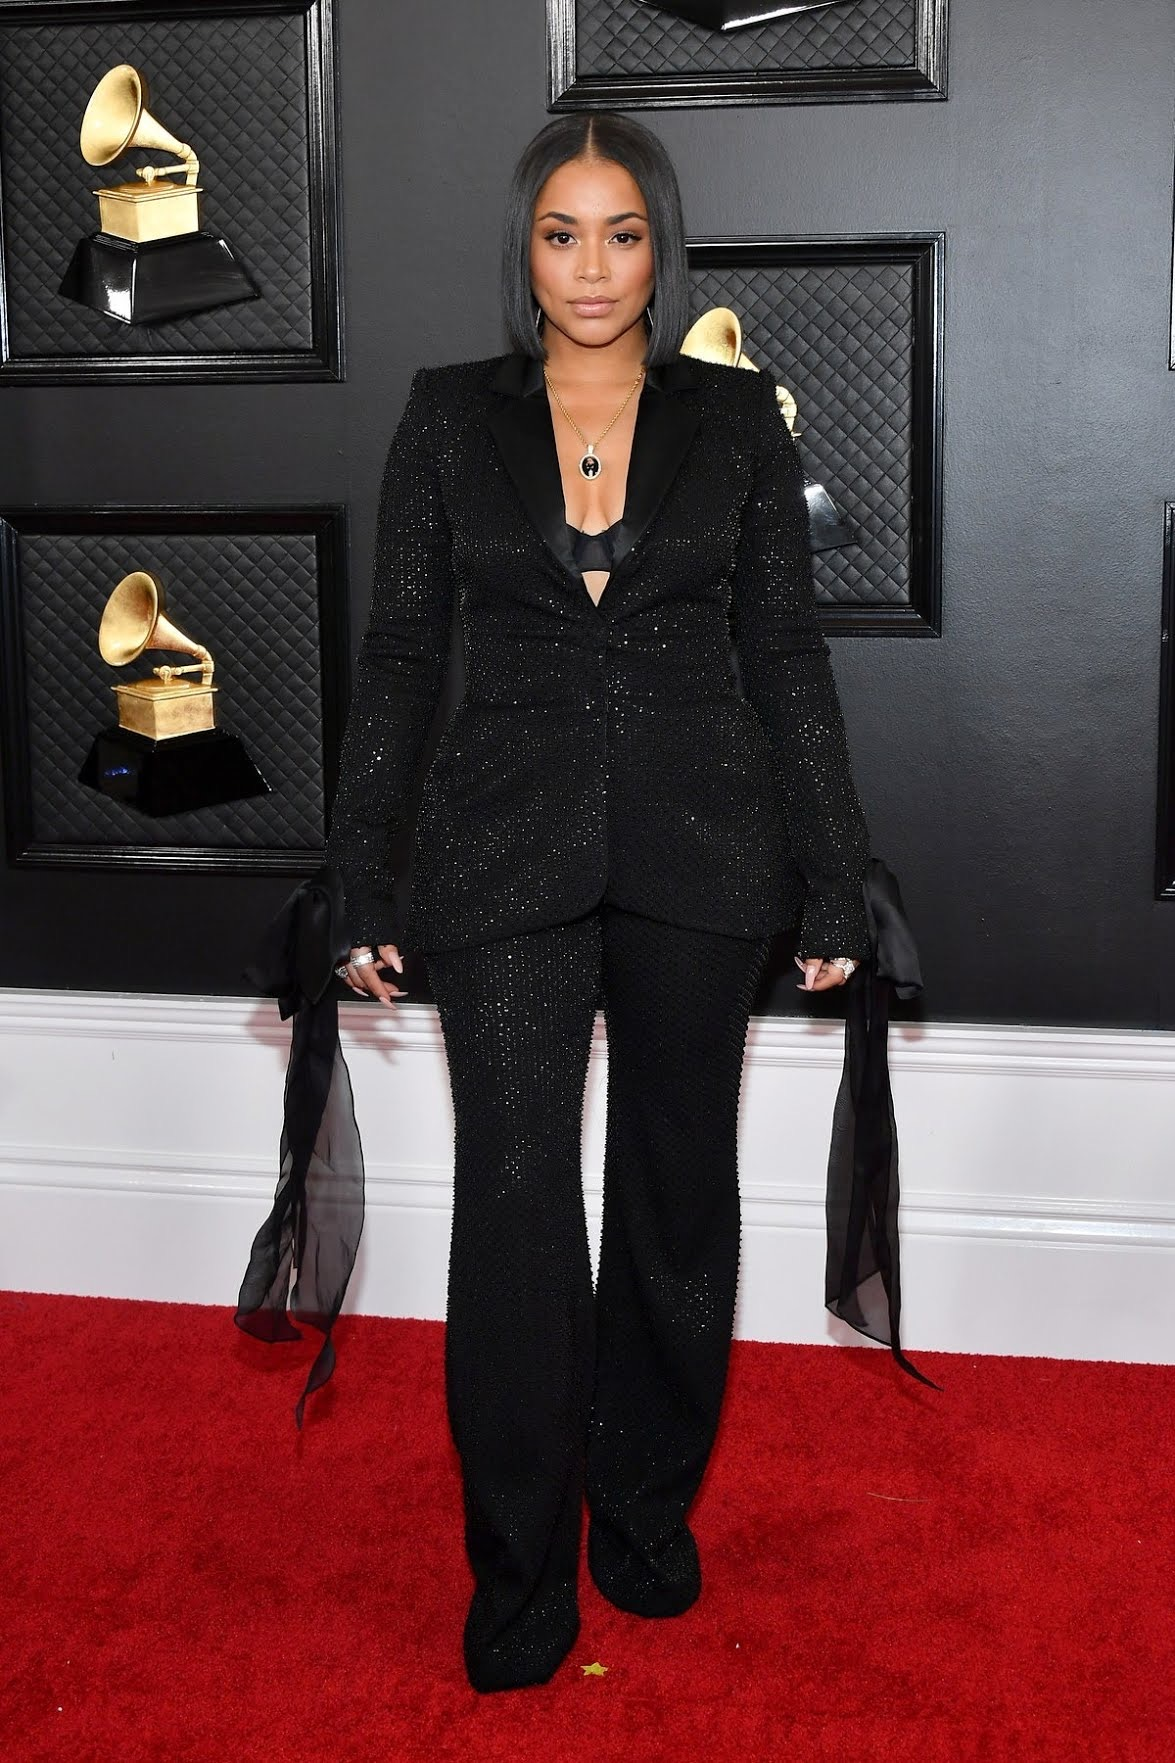 Grammy's 2020: Here's the Looks That Stole the Red Carpet